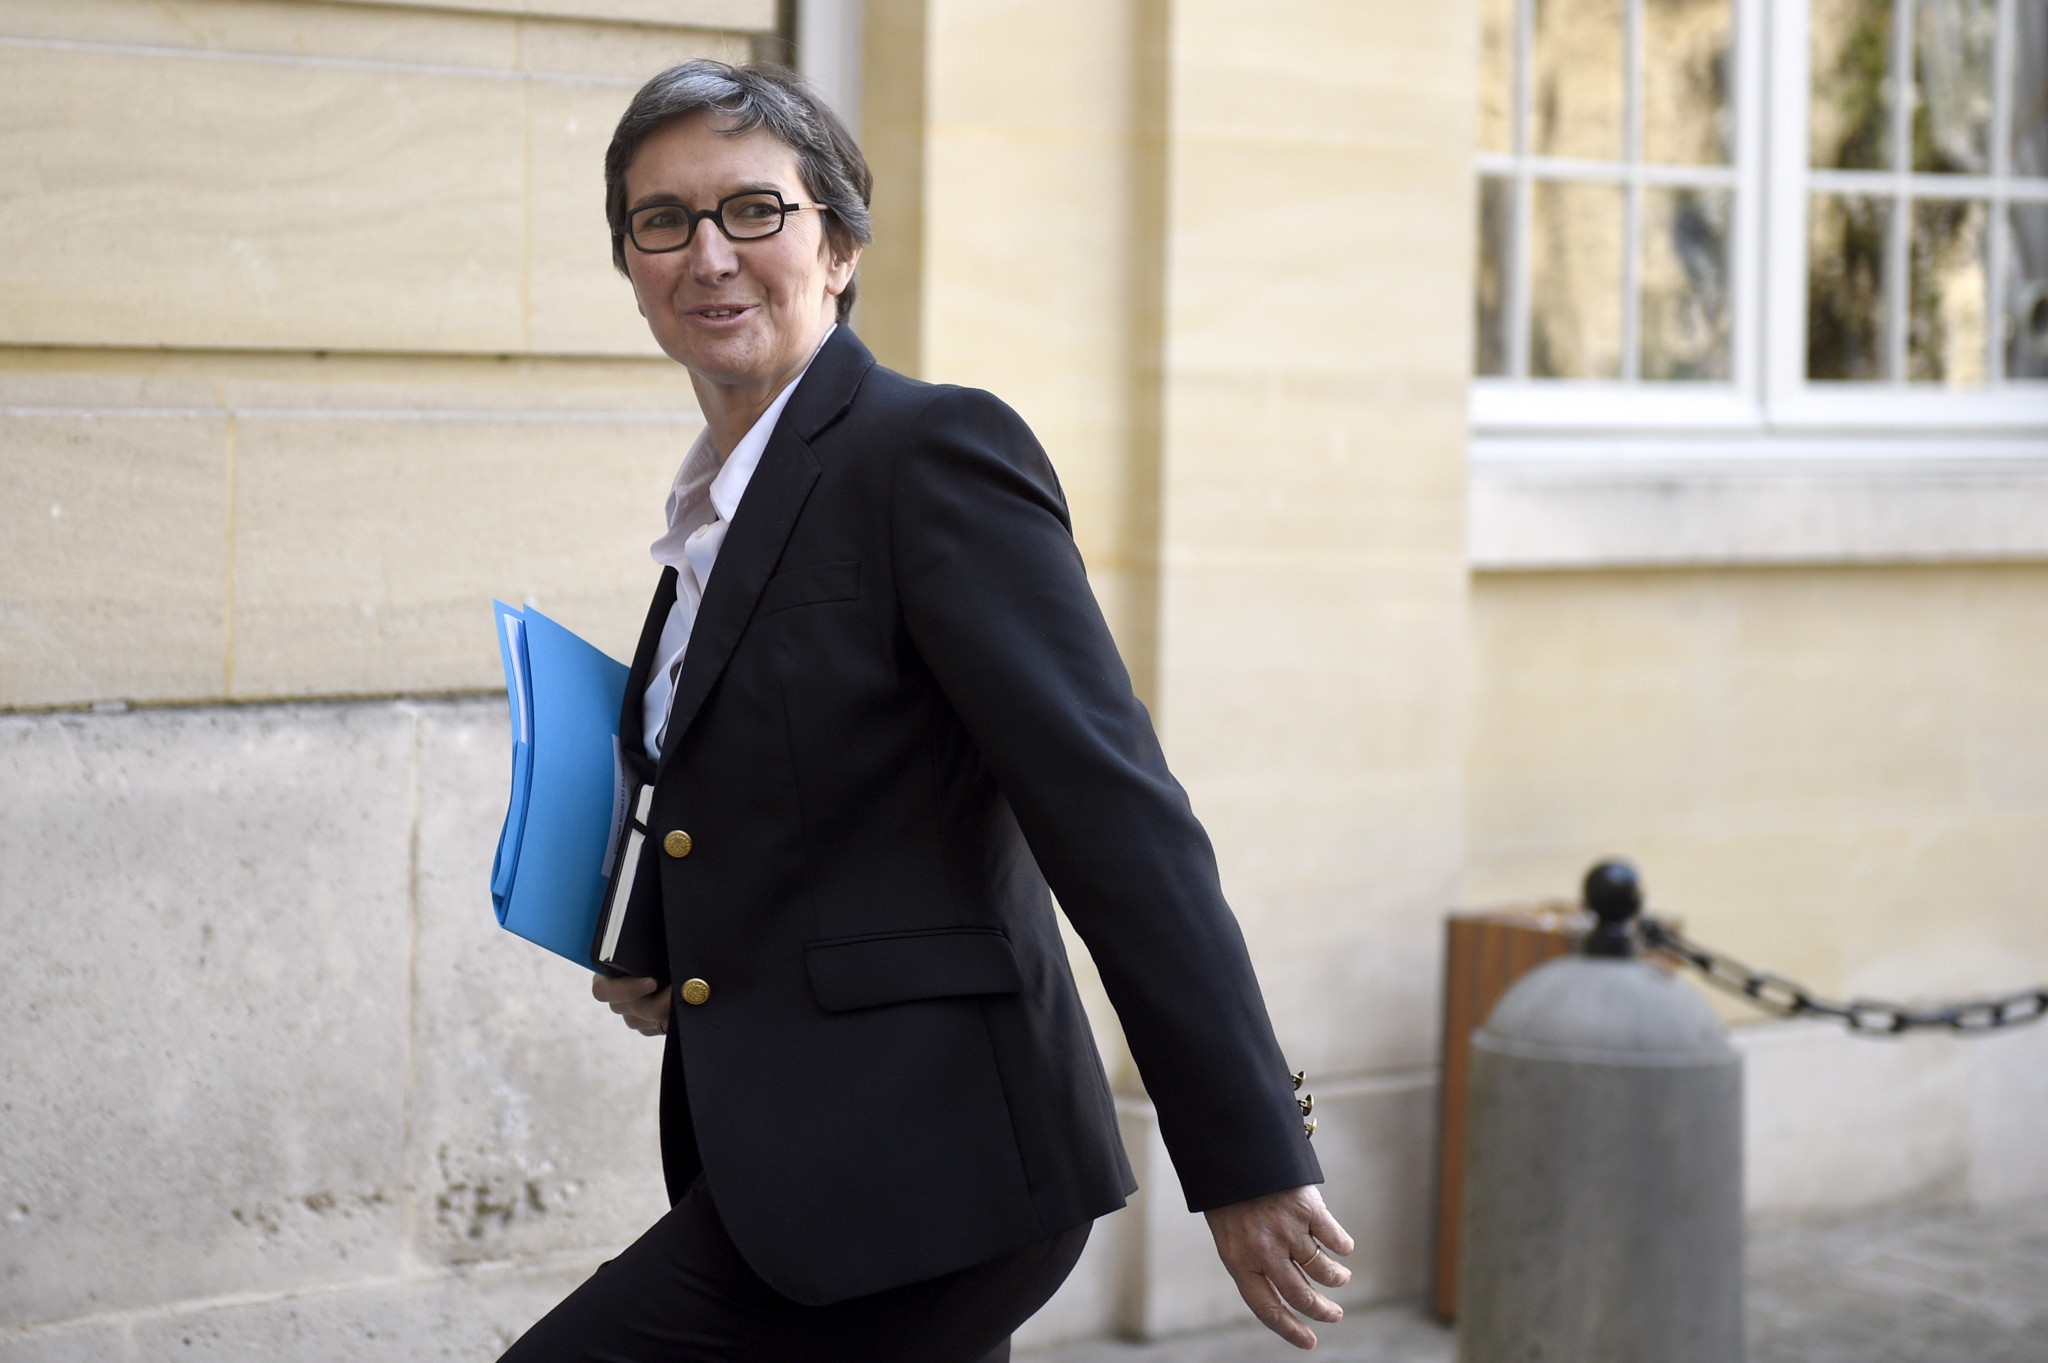 Valérie Fourneyron is chair of the IOC Invitation Review Panel ©Getty Images